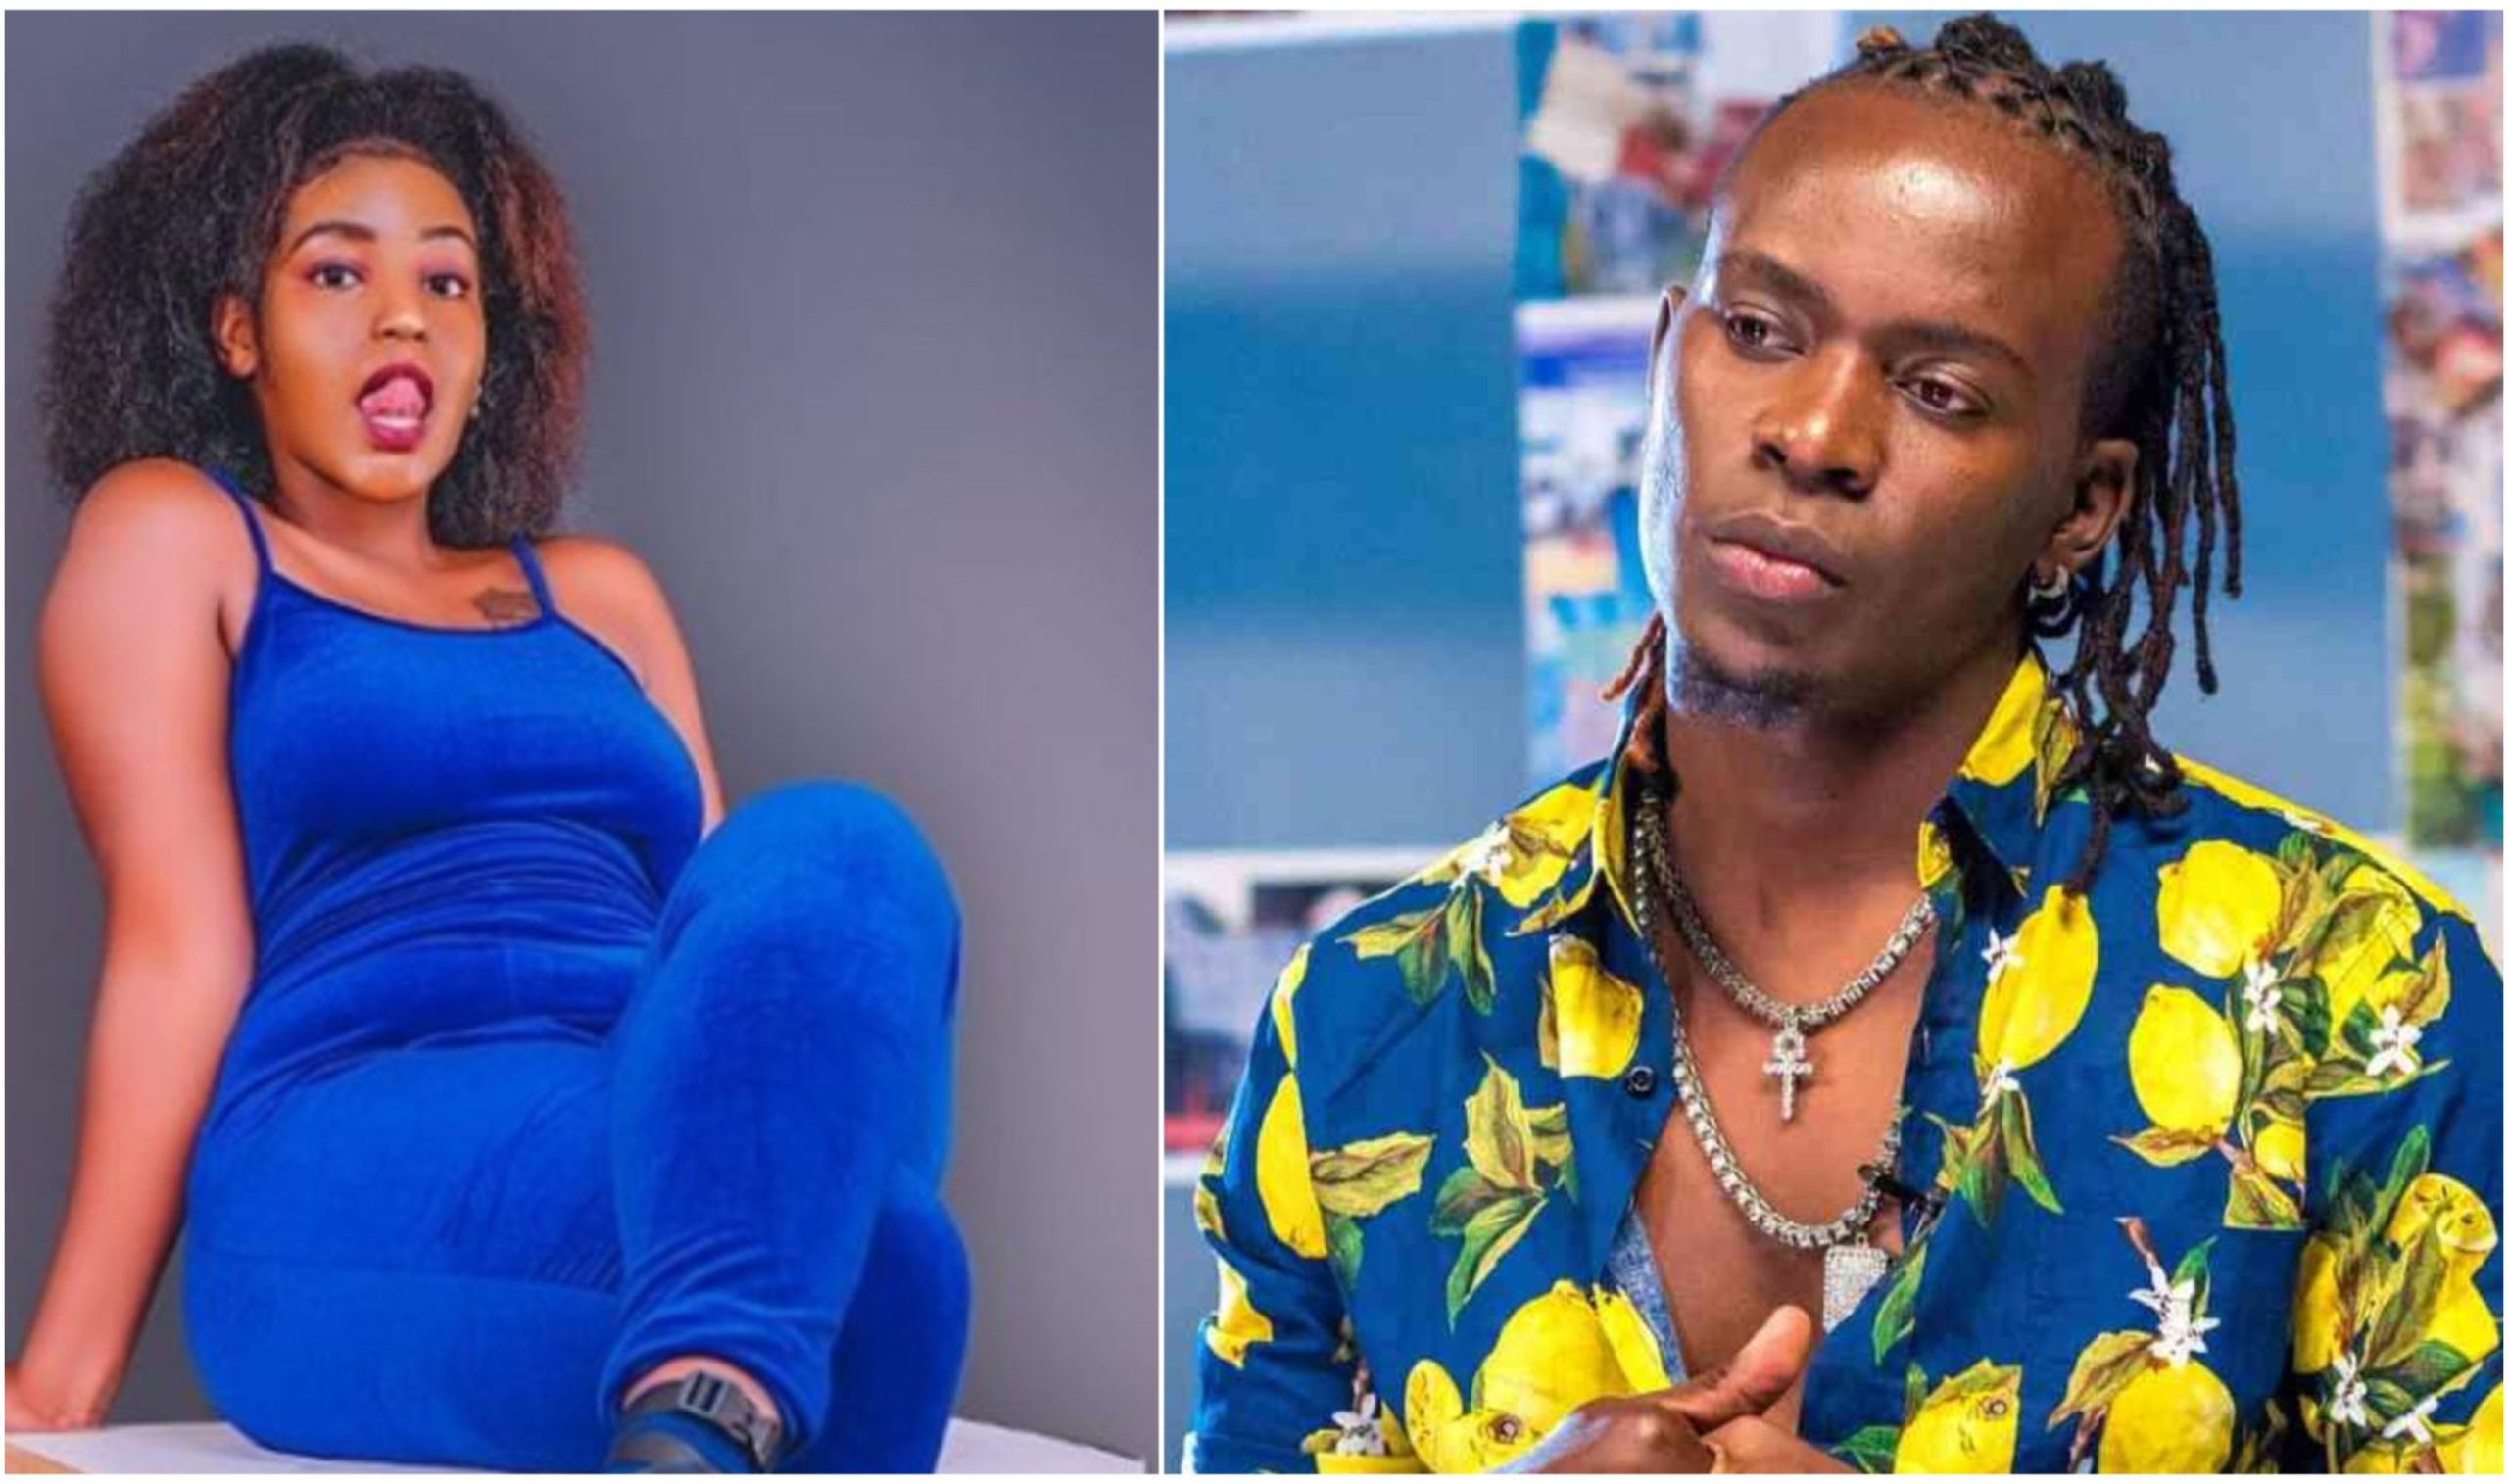 Shakilla comes clean on her unknown relationship with Willy Paul days after ugly night incident at his residence